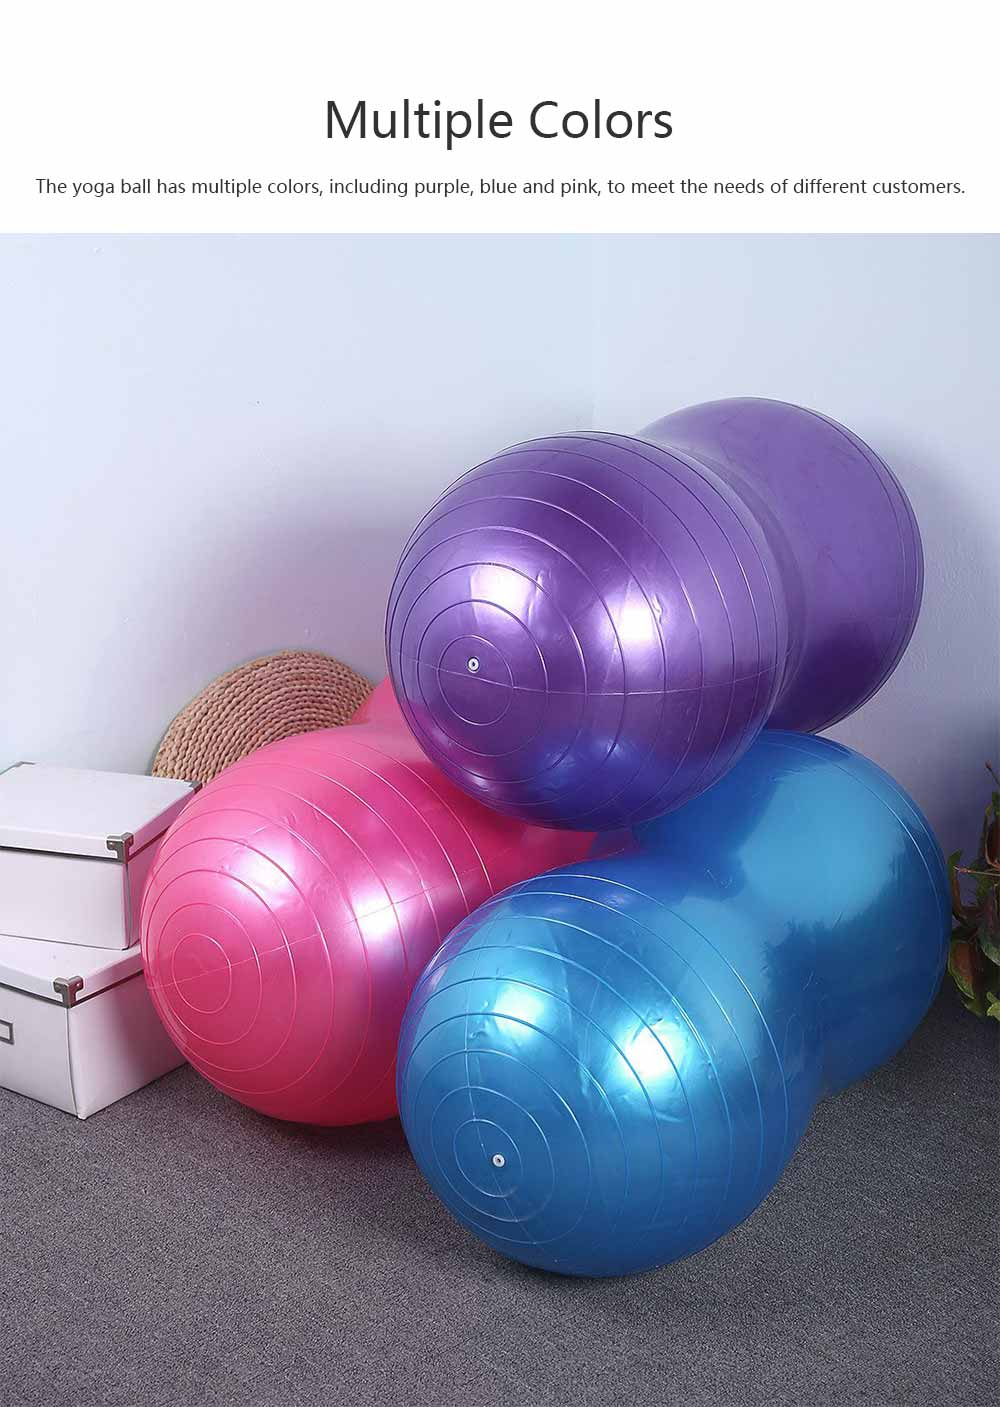 Yoga Ball PVC Material Explosion-proof Peanut Shape Training Fitness Thickness Nozzle with Pump Plug Air Pulling Massage Ball for All Ages People 6